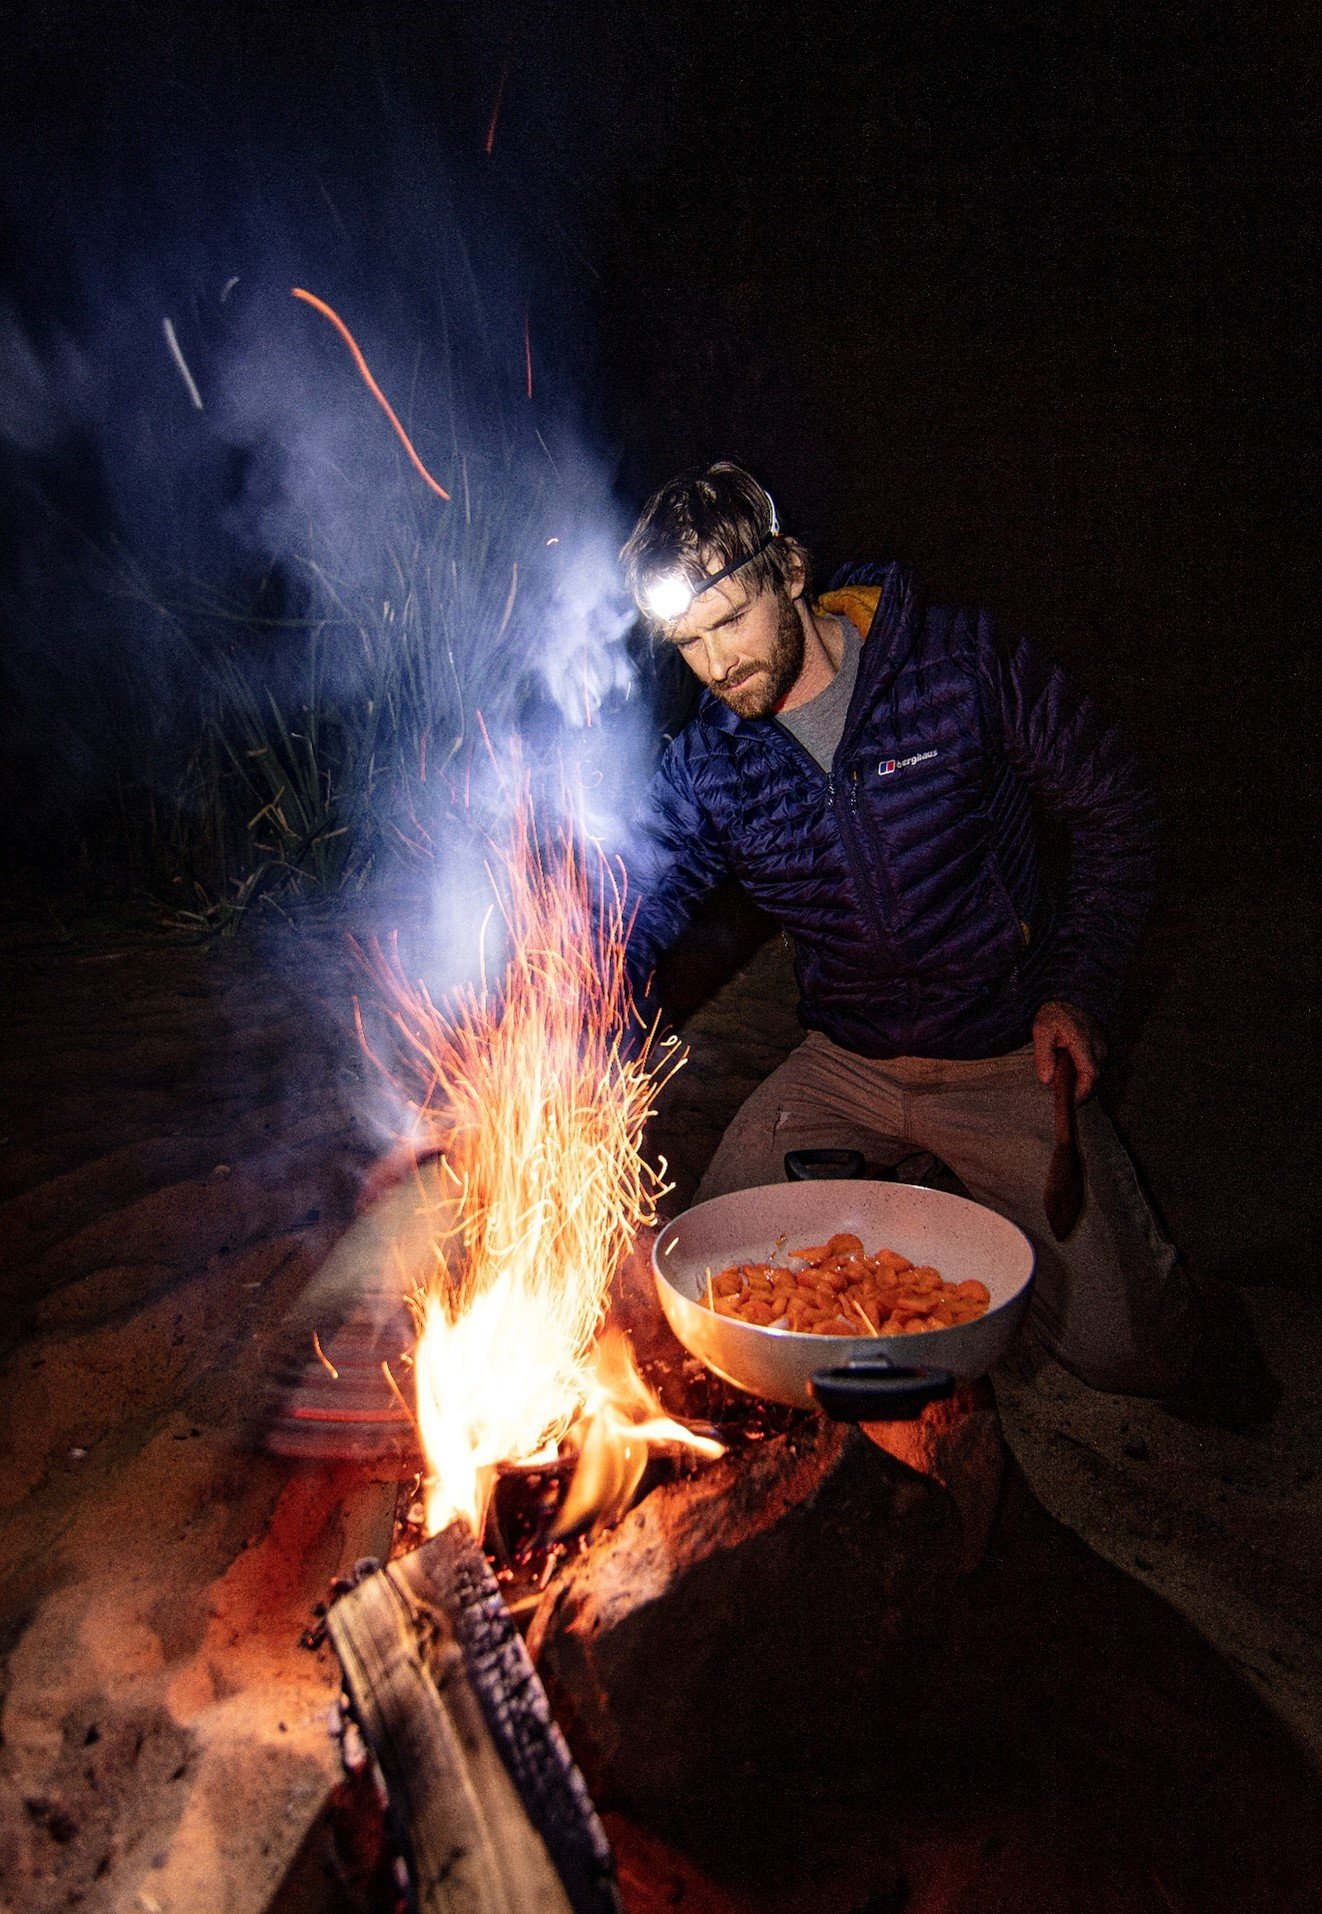 Man cooks on open flame and sparks leap high